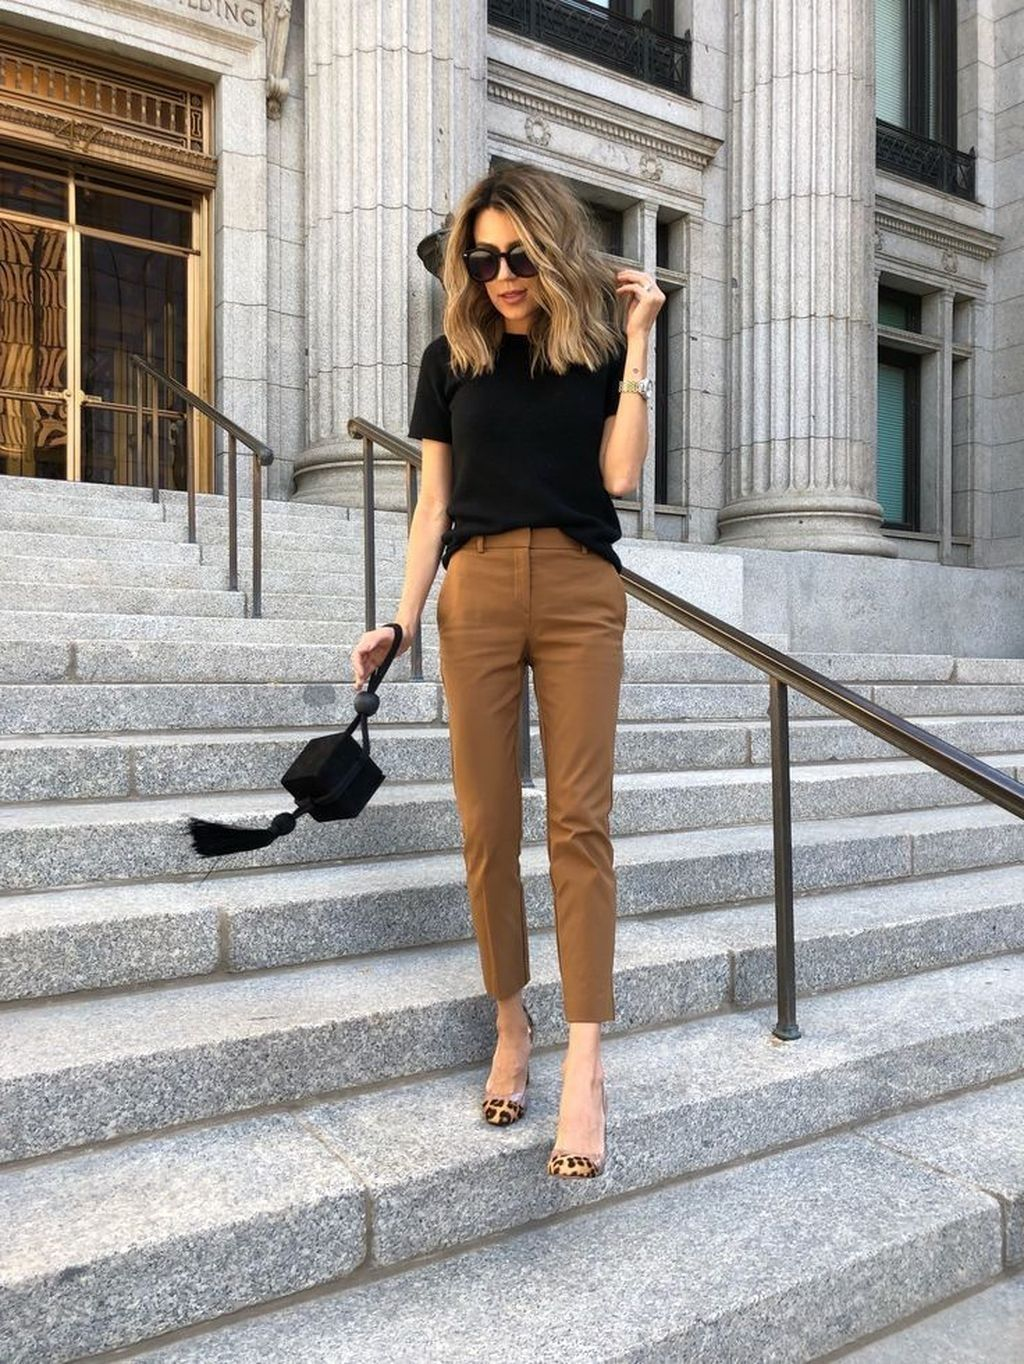 16 Trendy Autumn Street Style Outfits For 2018 16 Trendy Autumn Street Style Outfits For 2018 Casual Outfit casual outfits for girl